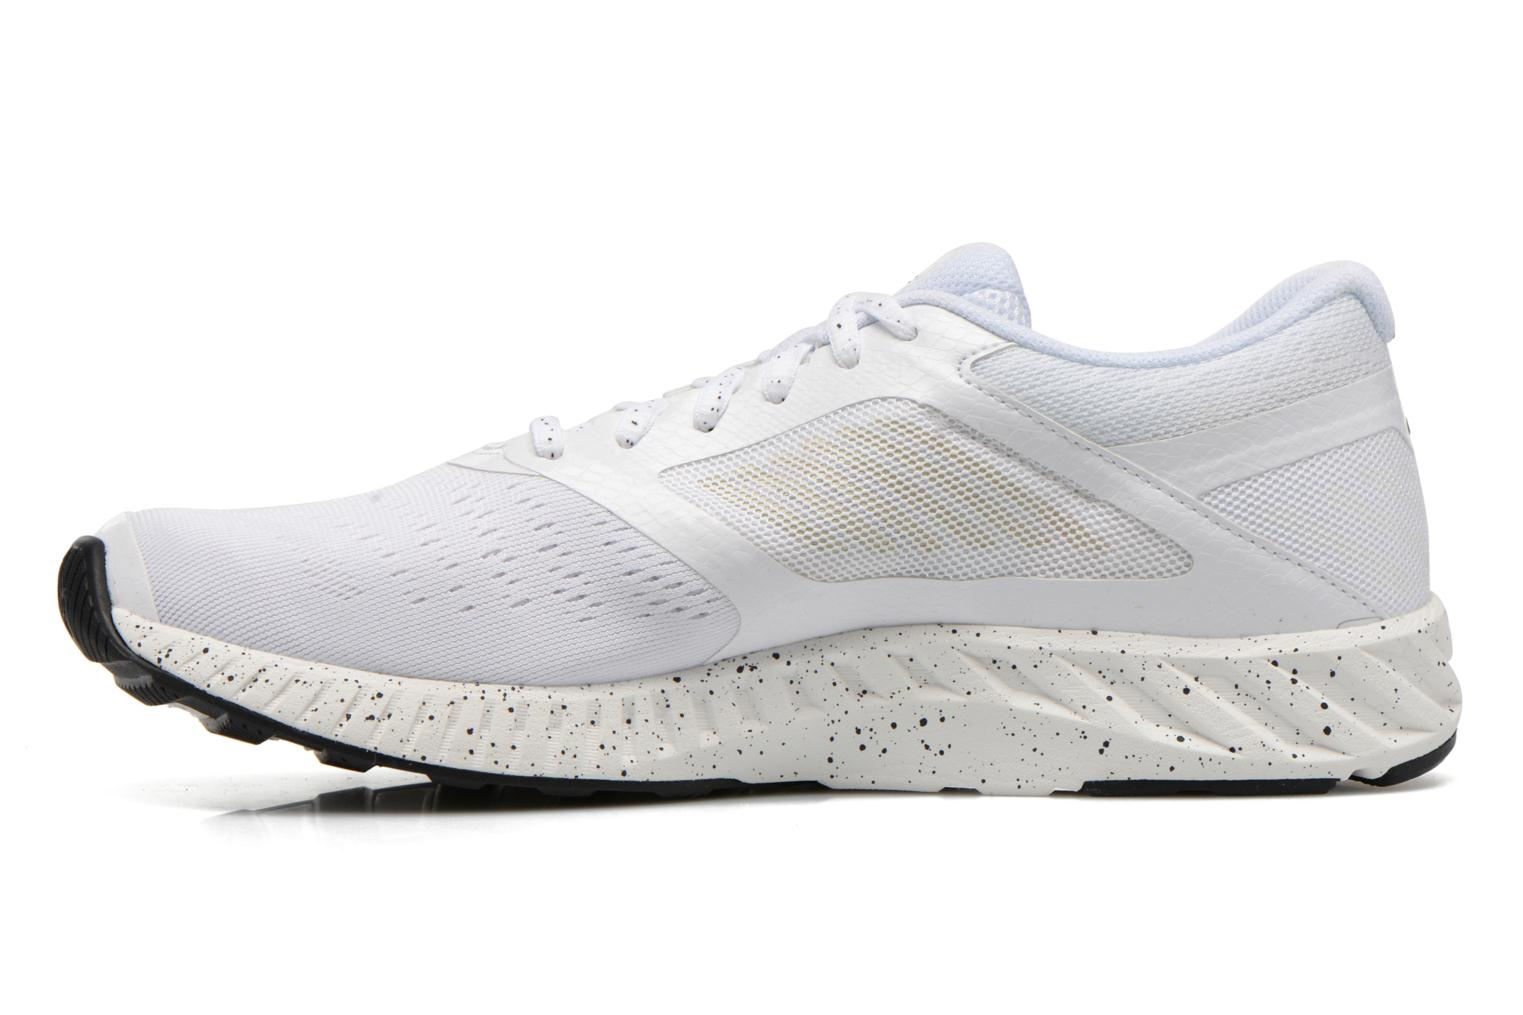 Fuzex Lyte White - Bone White - Black